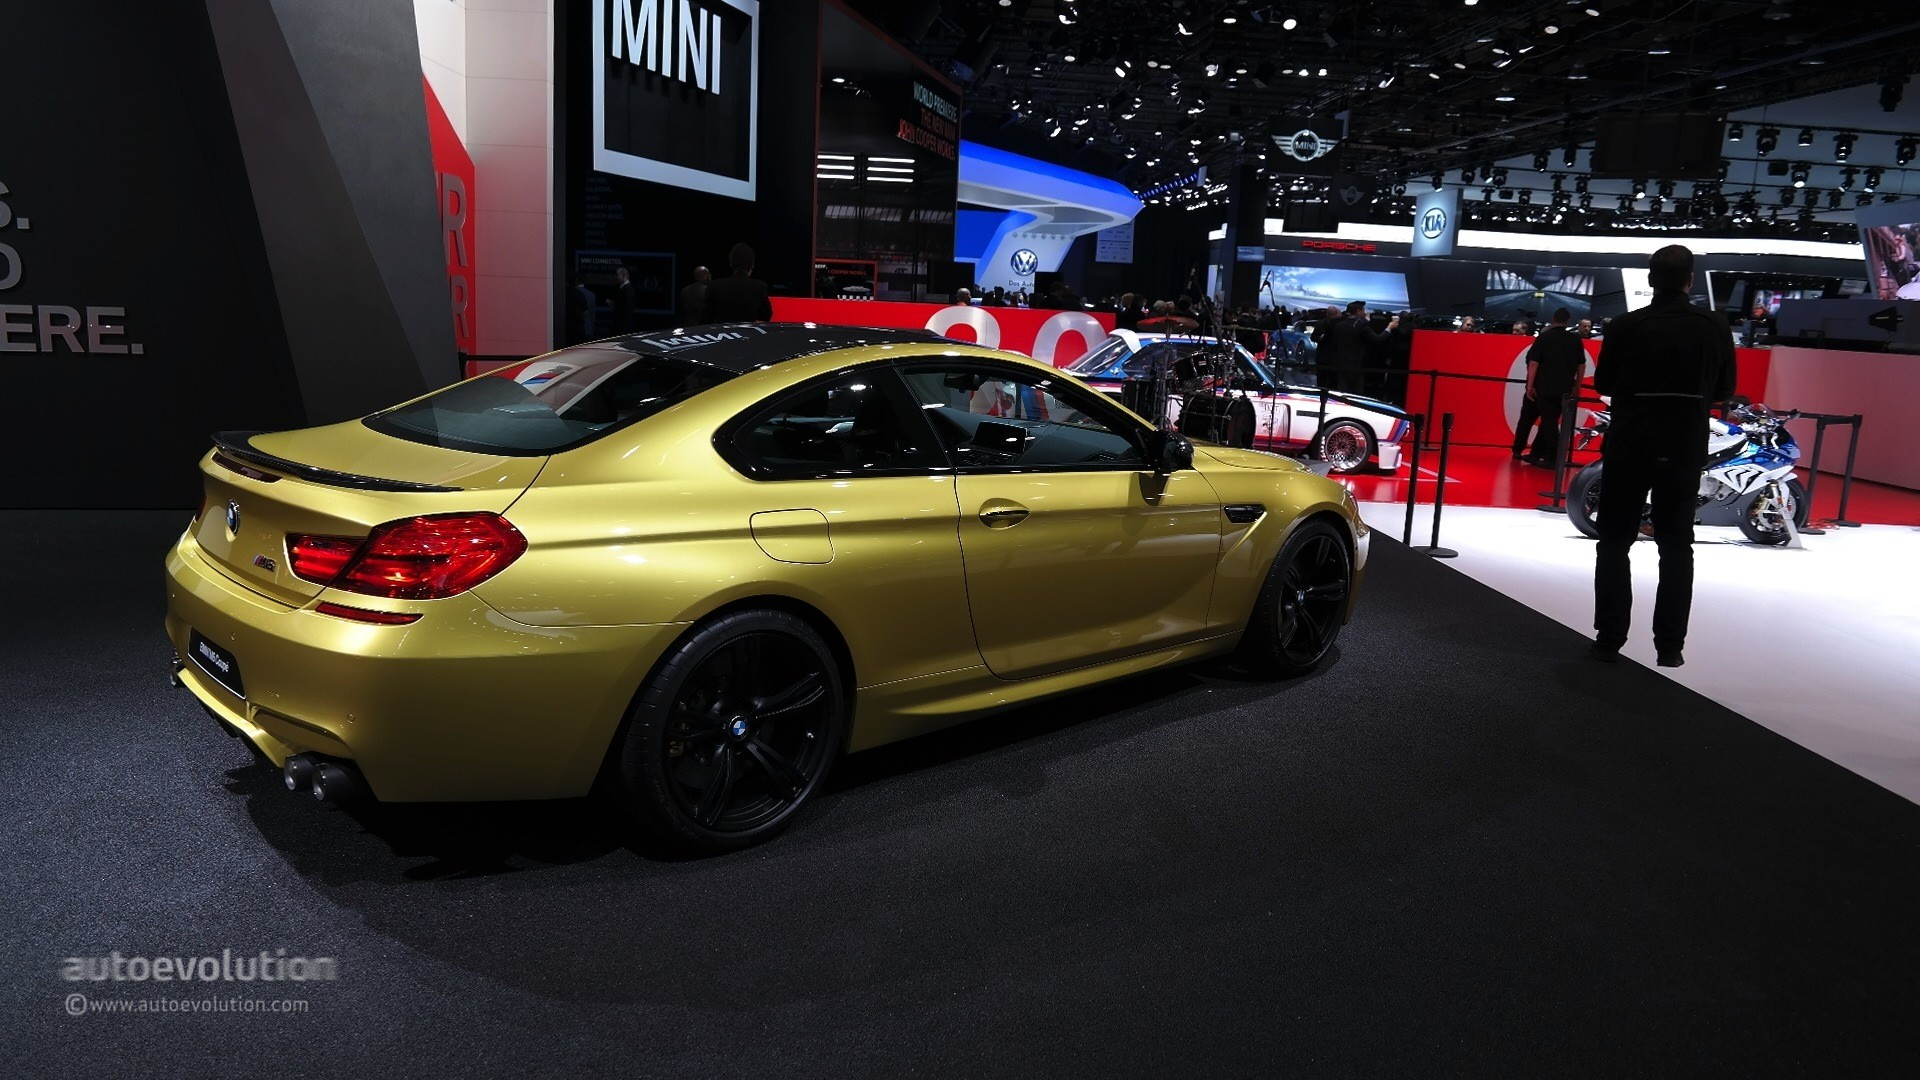 World Debut For 2015 Bmw M6 Lci In Austin Yellow At The